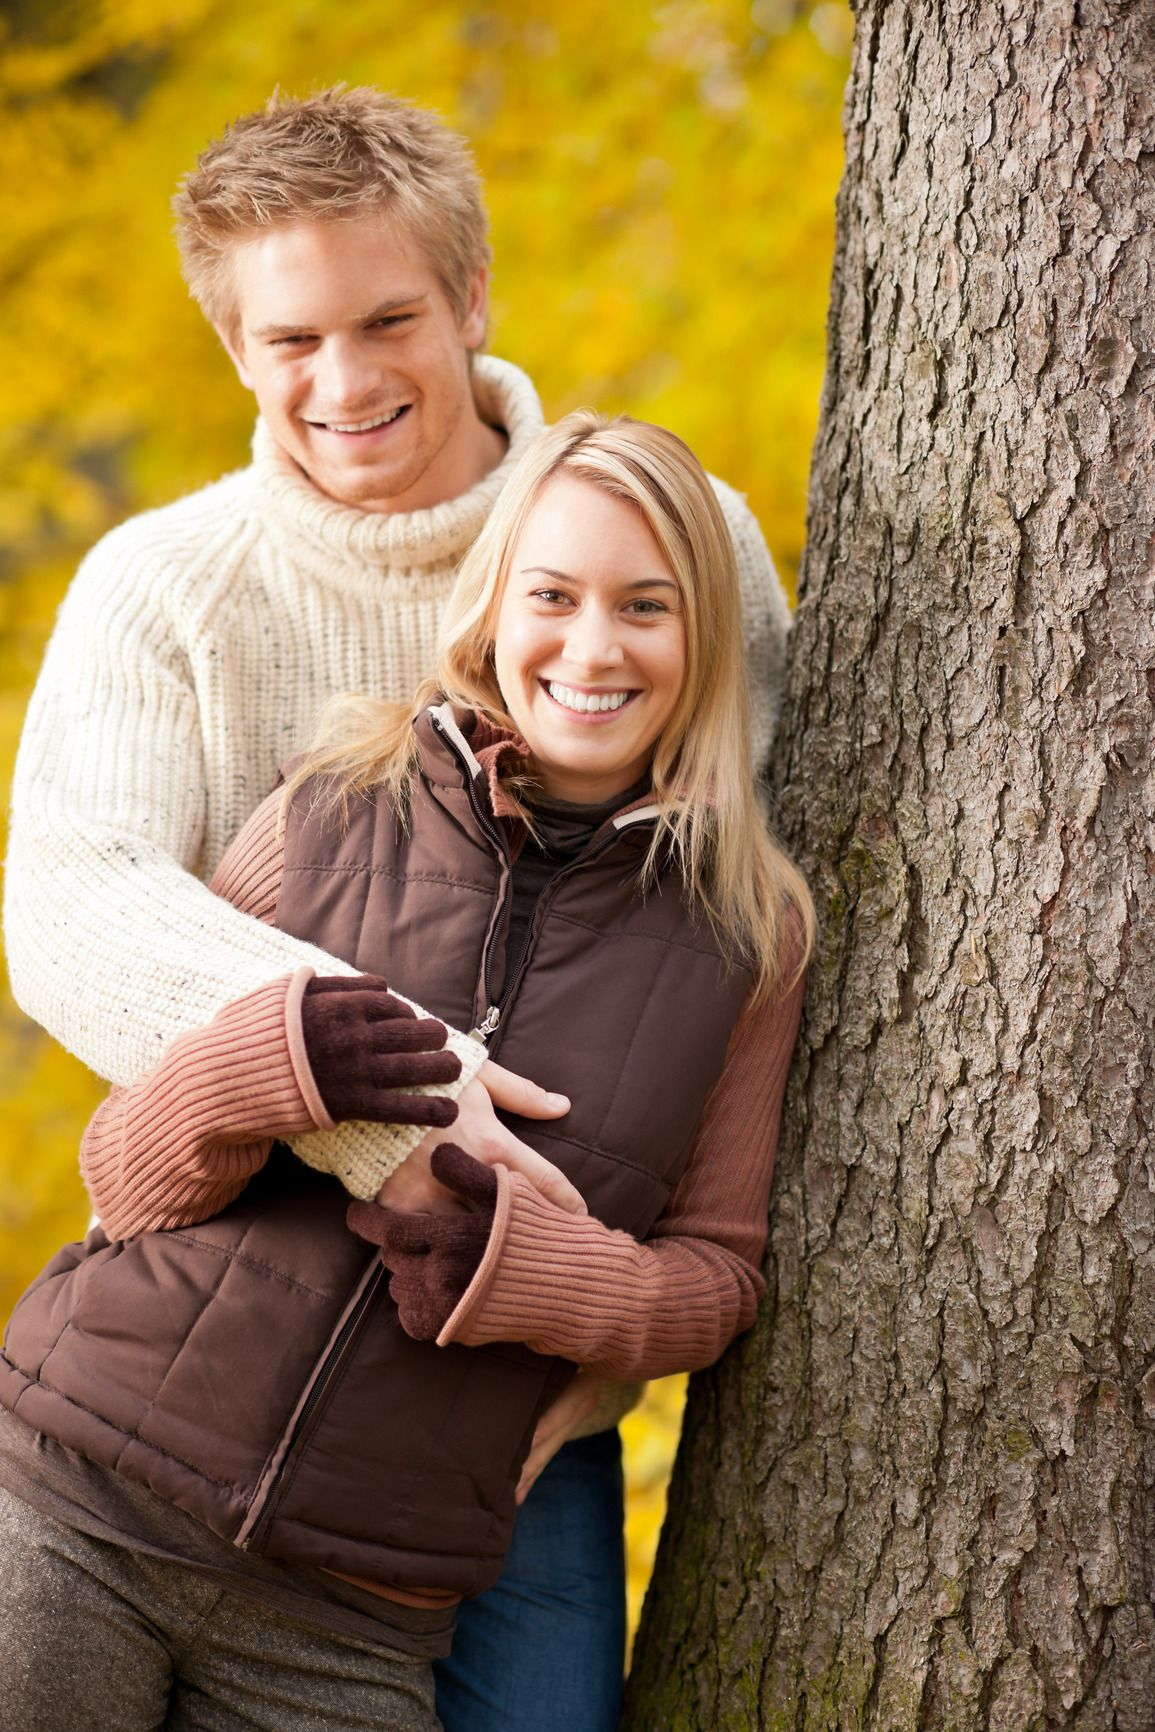 gluten free dating sites